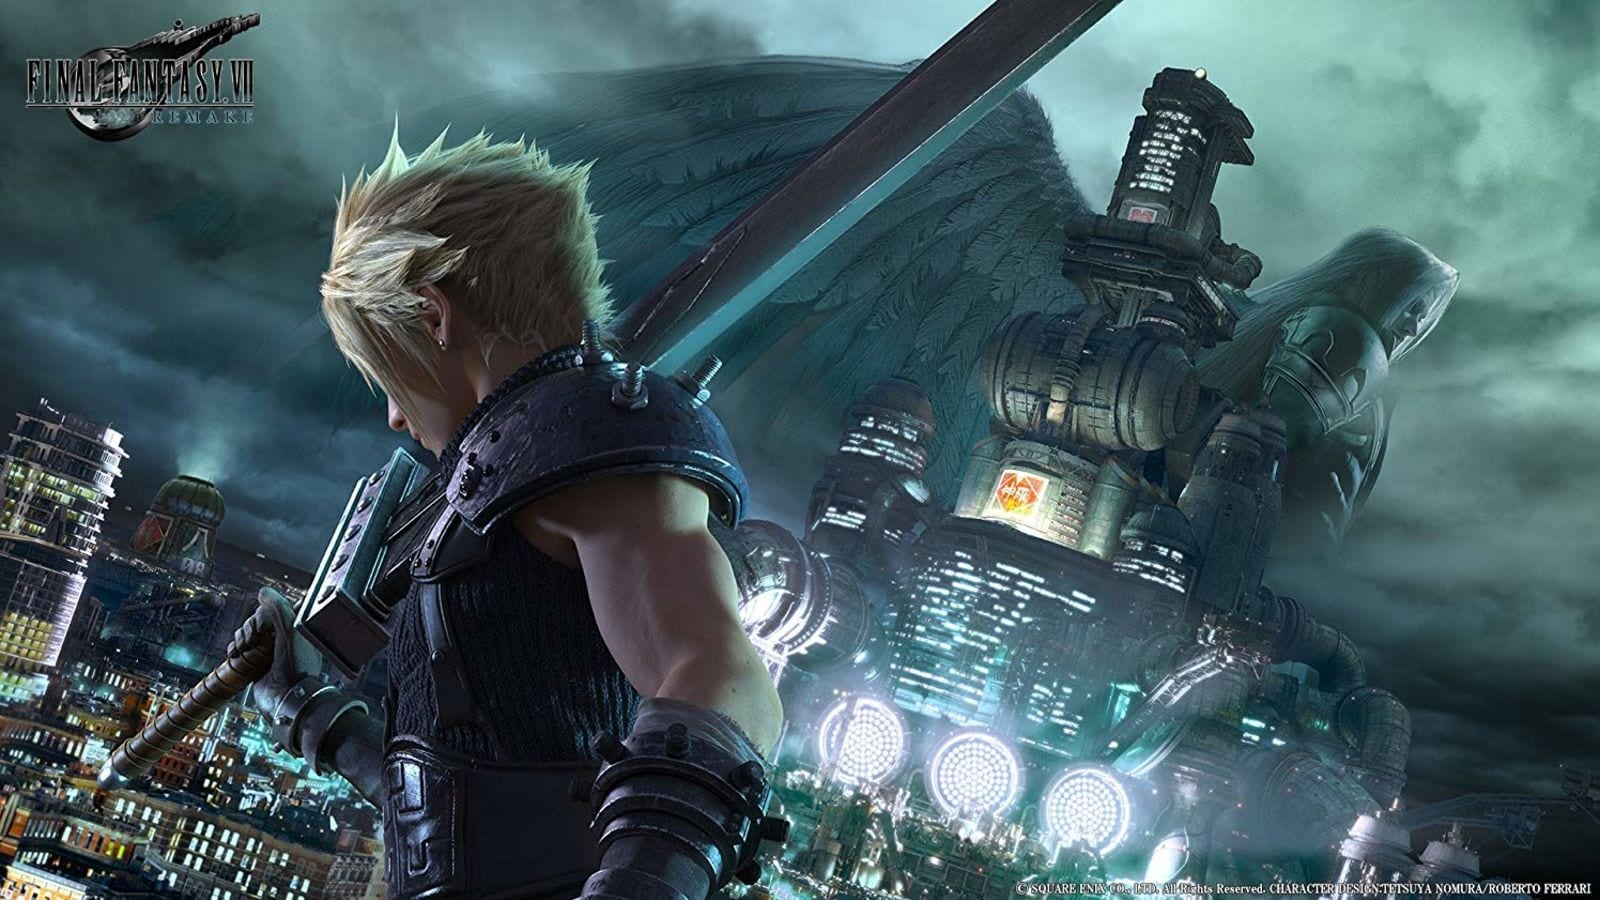 Gaming News: E3 2019 – Final Fantasy VII Remake Release Date Announced